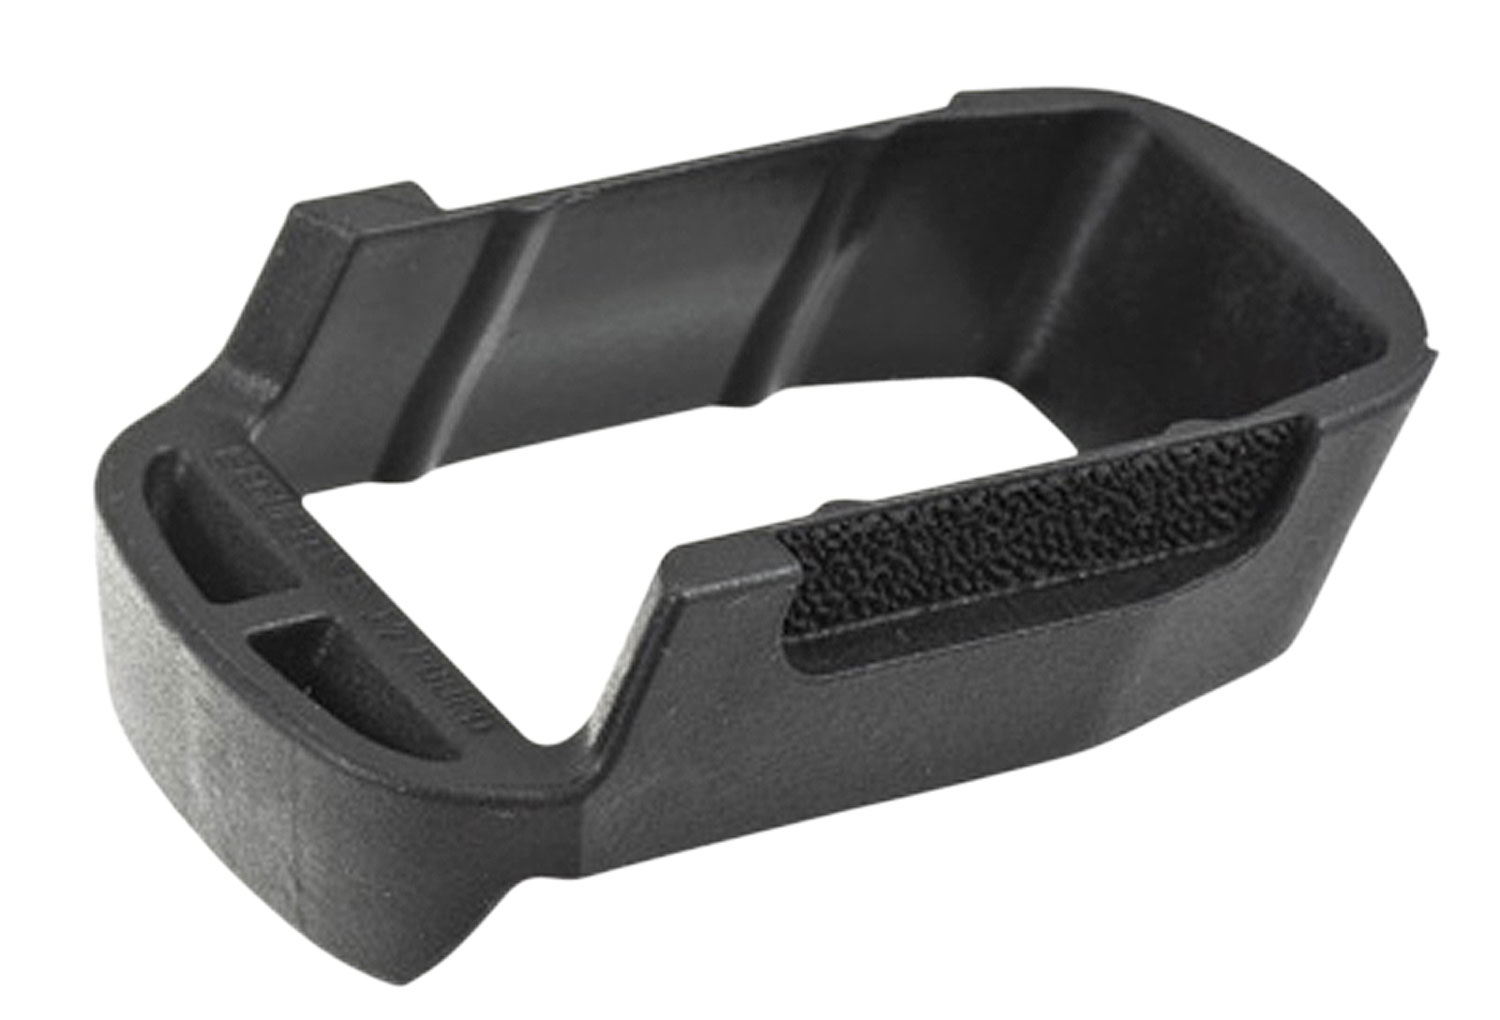 SECURITY9 COMPACT MAG ADAPTER - 90668